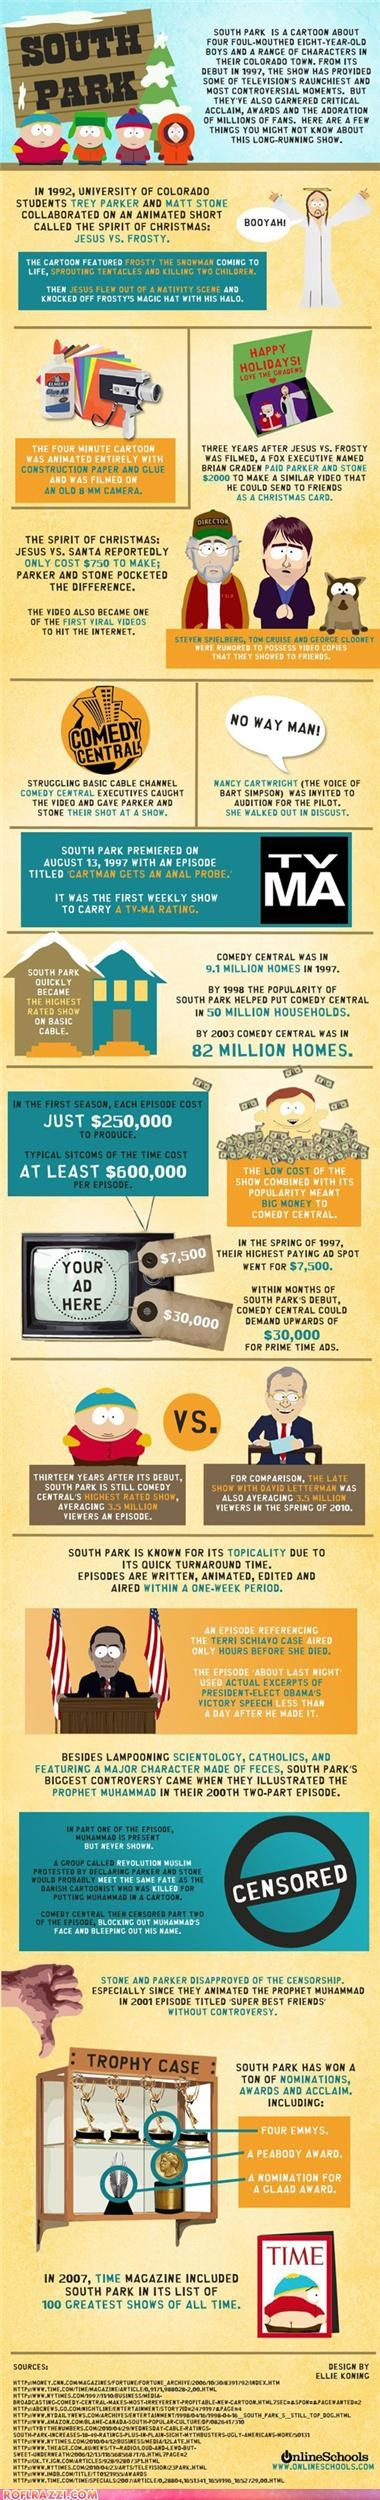 animation cool infographic South Park